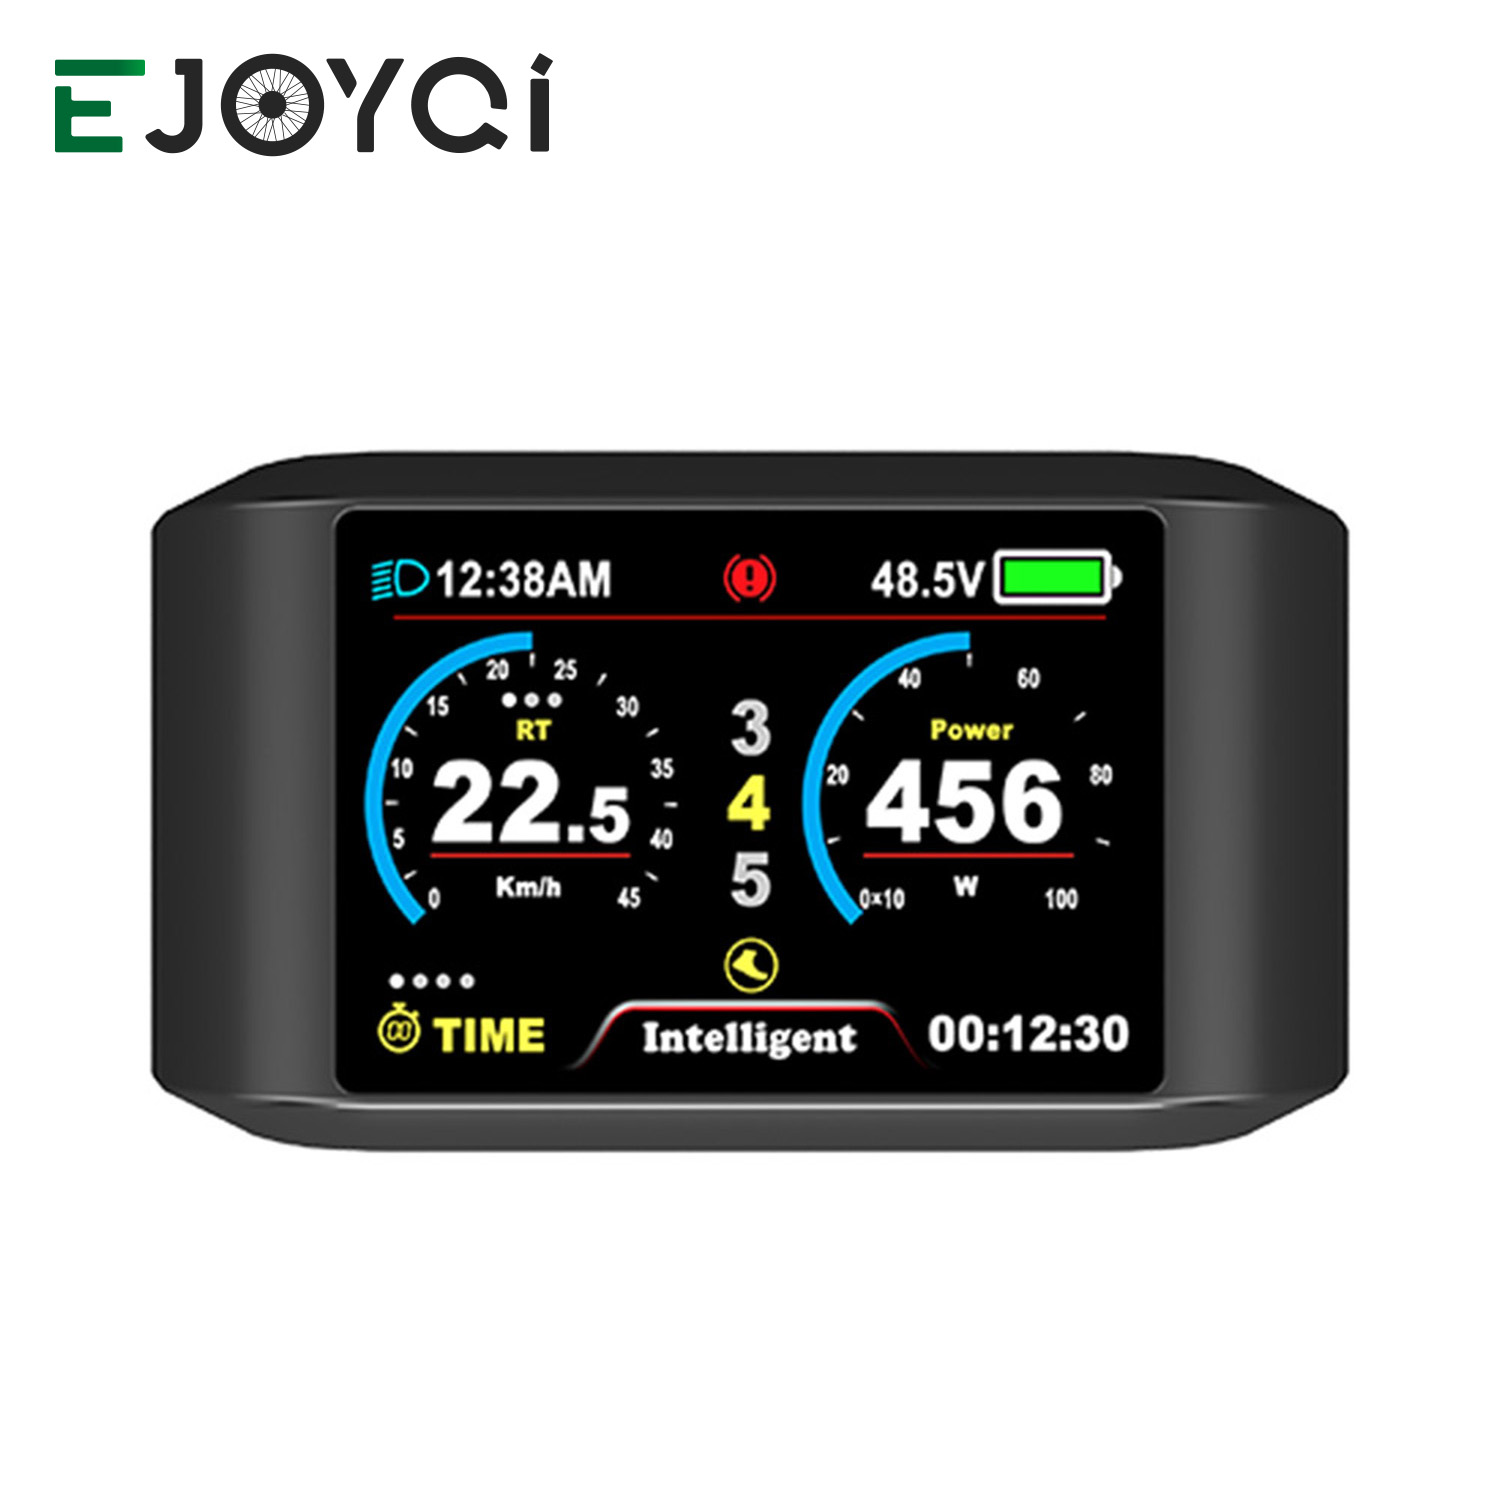 EJOYQI Bafang 750C LCD Ebike Display Colour Screen TFT Midmotor Kit BBS01 BBS02 BBSHD Electric Bicycle Kit Free Shipping